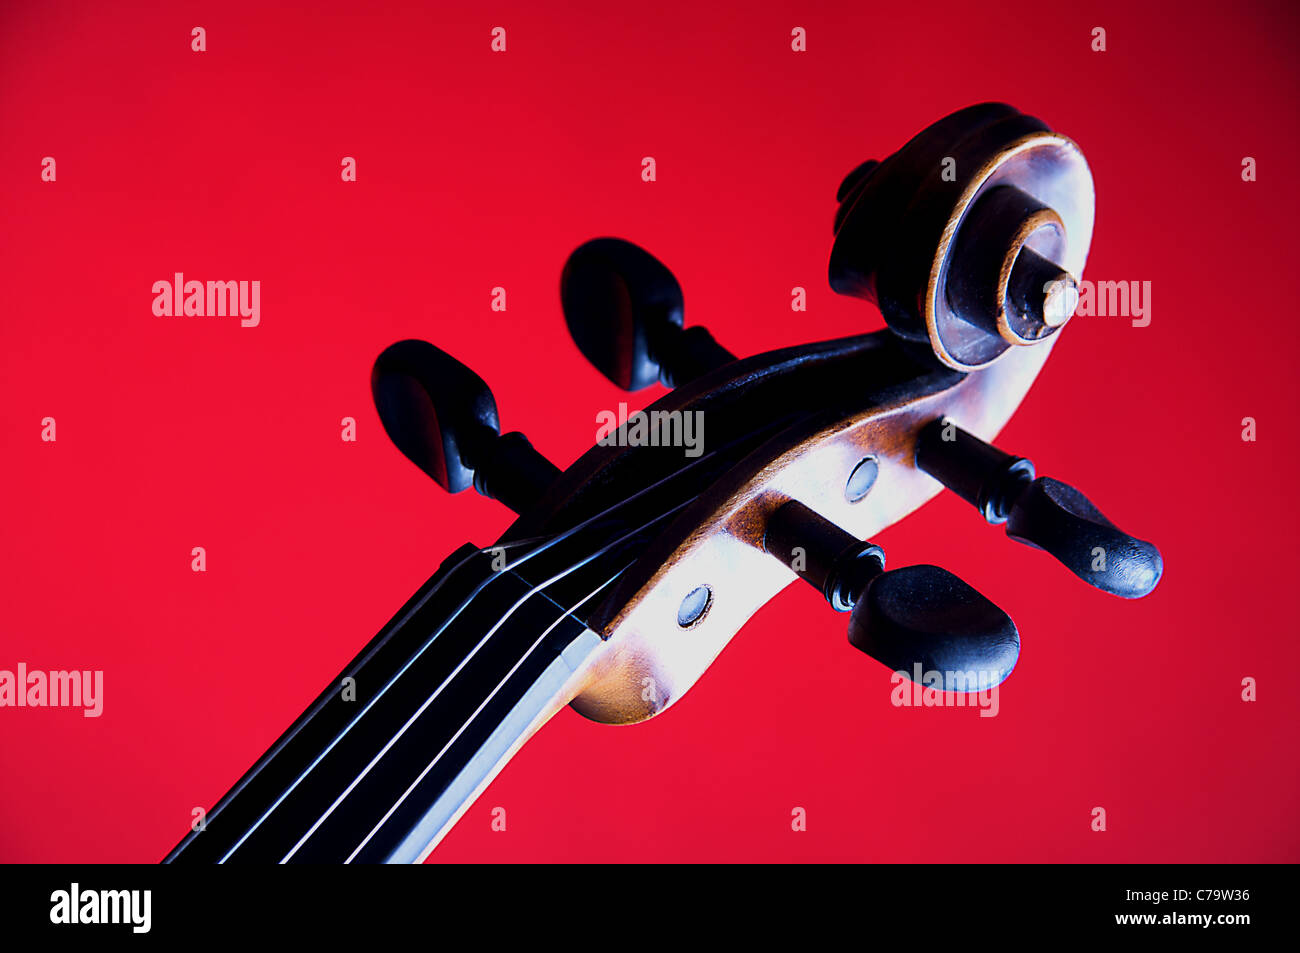 Violin Viola Scroll Isolated on Red - Stock Image